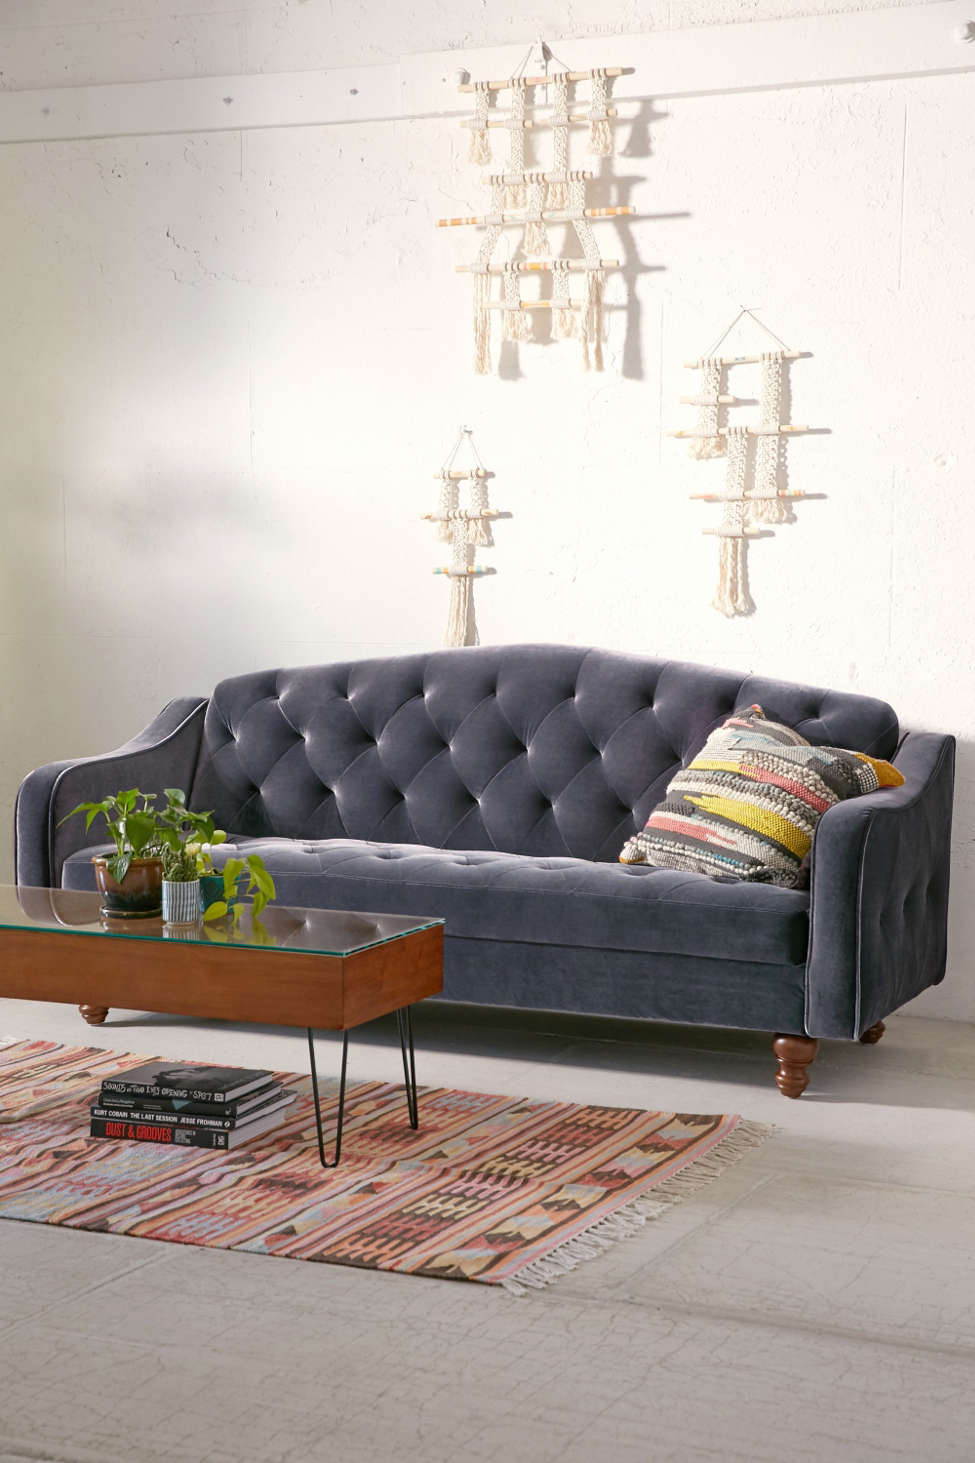 Best ideas about Urban Outfitters Sofa . Save or Pin Sofa Dreaming Techie s DIY Adventures Now.